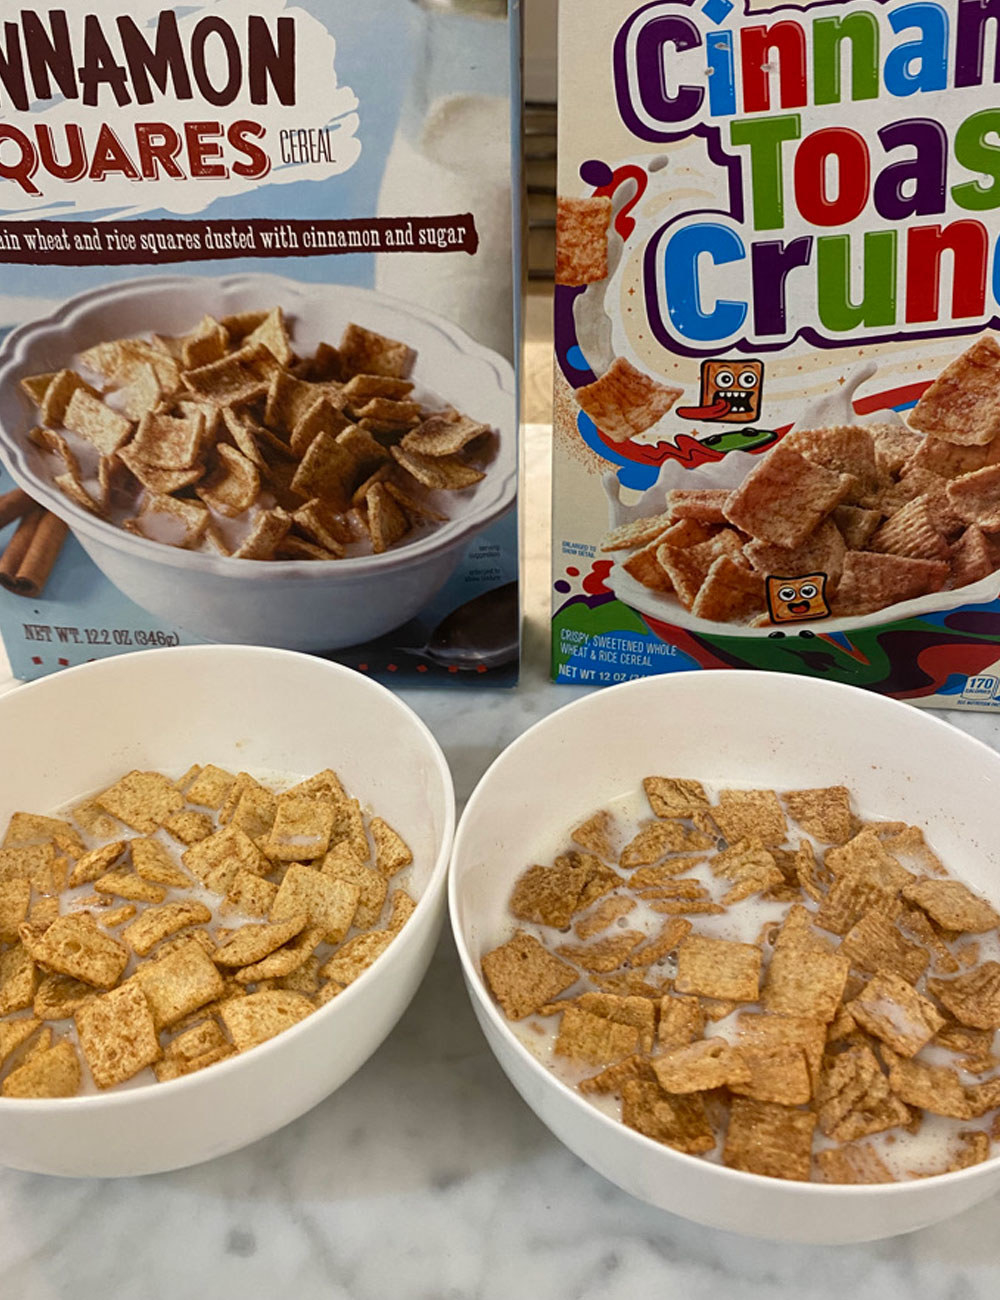 Trader Joe's cinnamon squares and Cinnamon Toast Crunch in bowls with milk